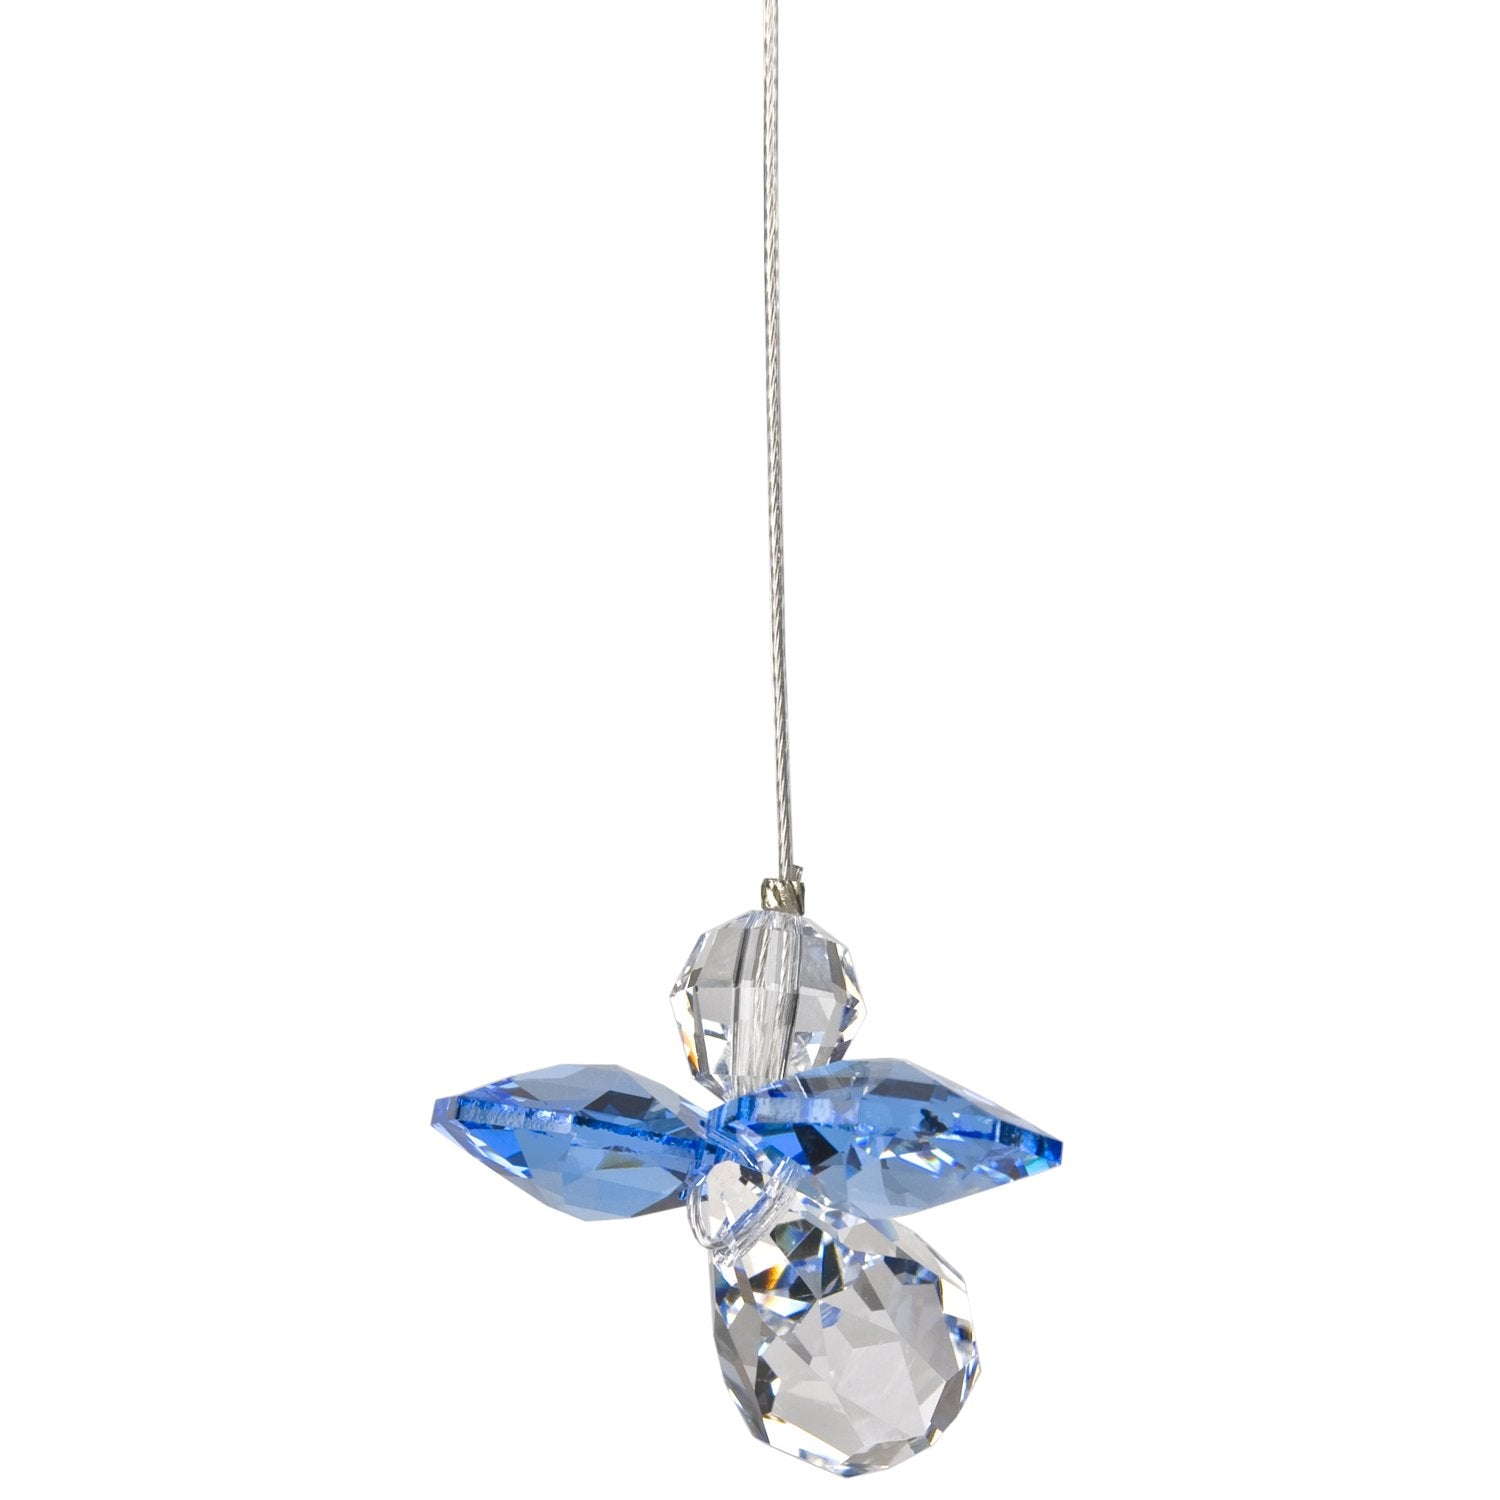 Crystal Guardian Angel Suncatcher - Sapphire (September) alternate product image